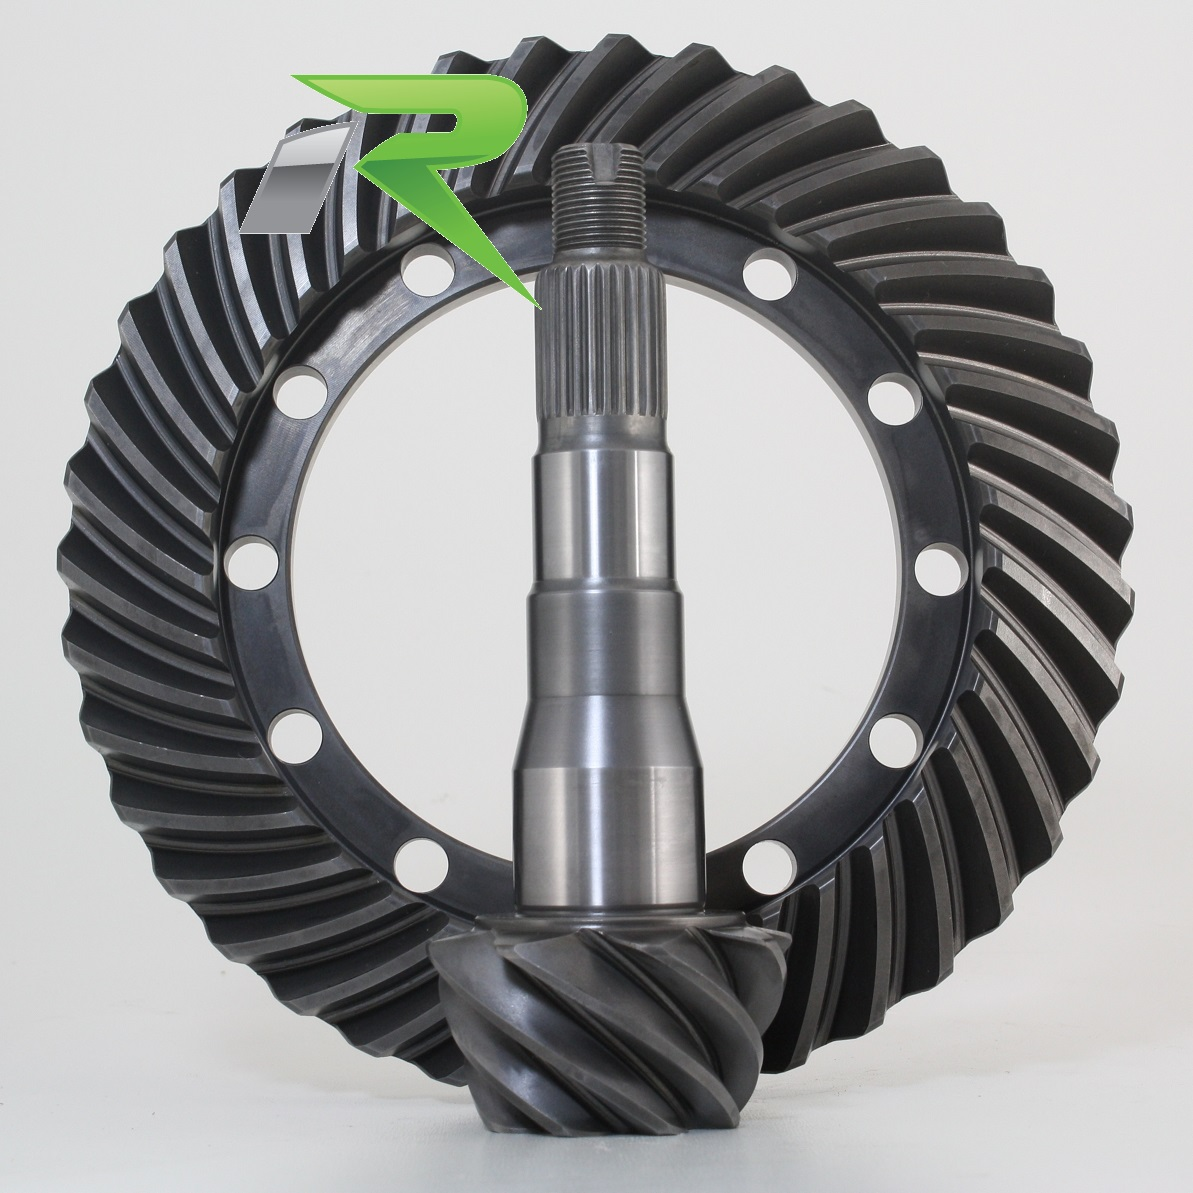 Toyota 9.5 Inch Land Cruiser 4.88 Ring and Pinion Revolution Gear